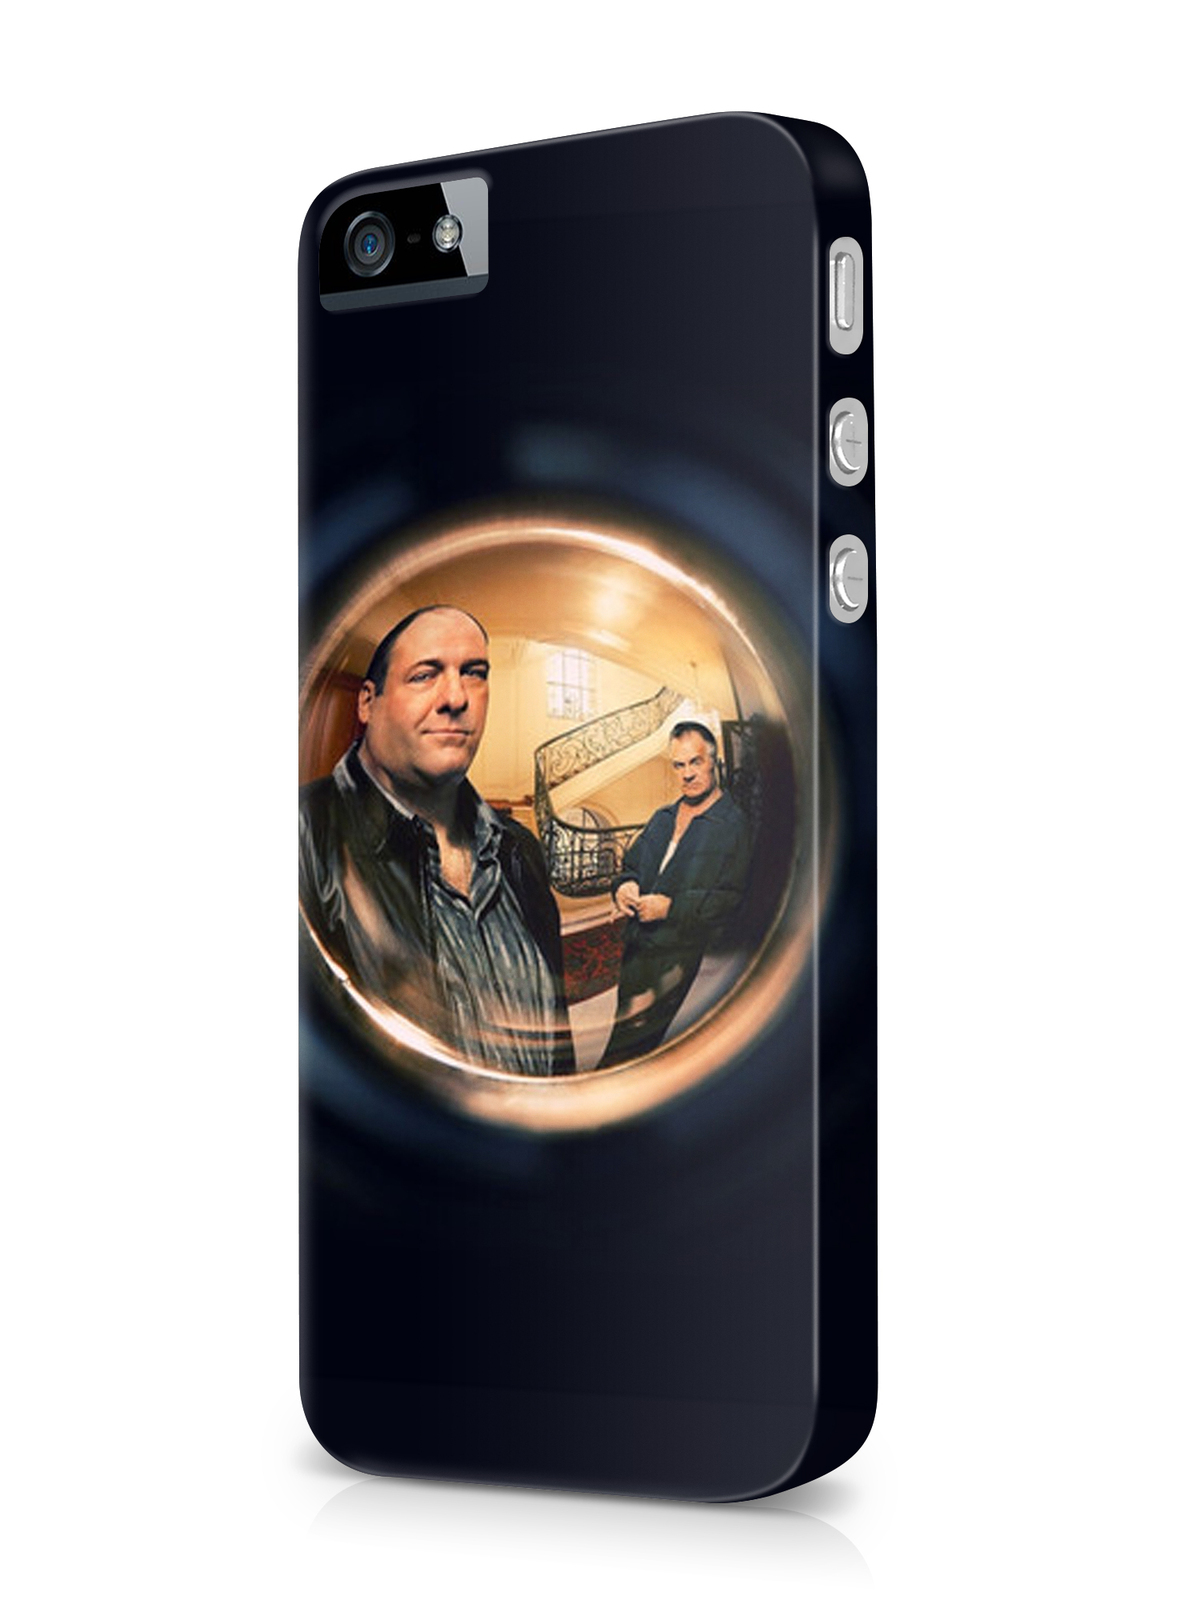 The Sopranos Mob gangster bada bing Tony cover case for iPhone 7